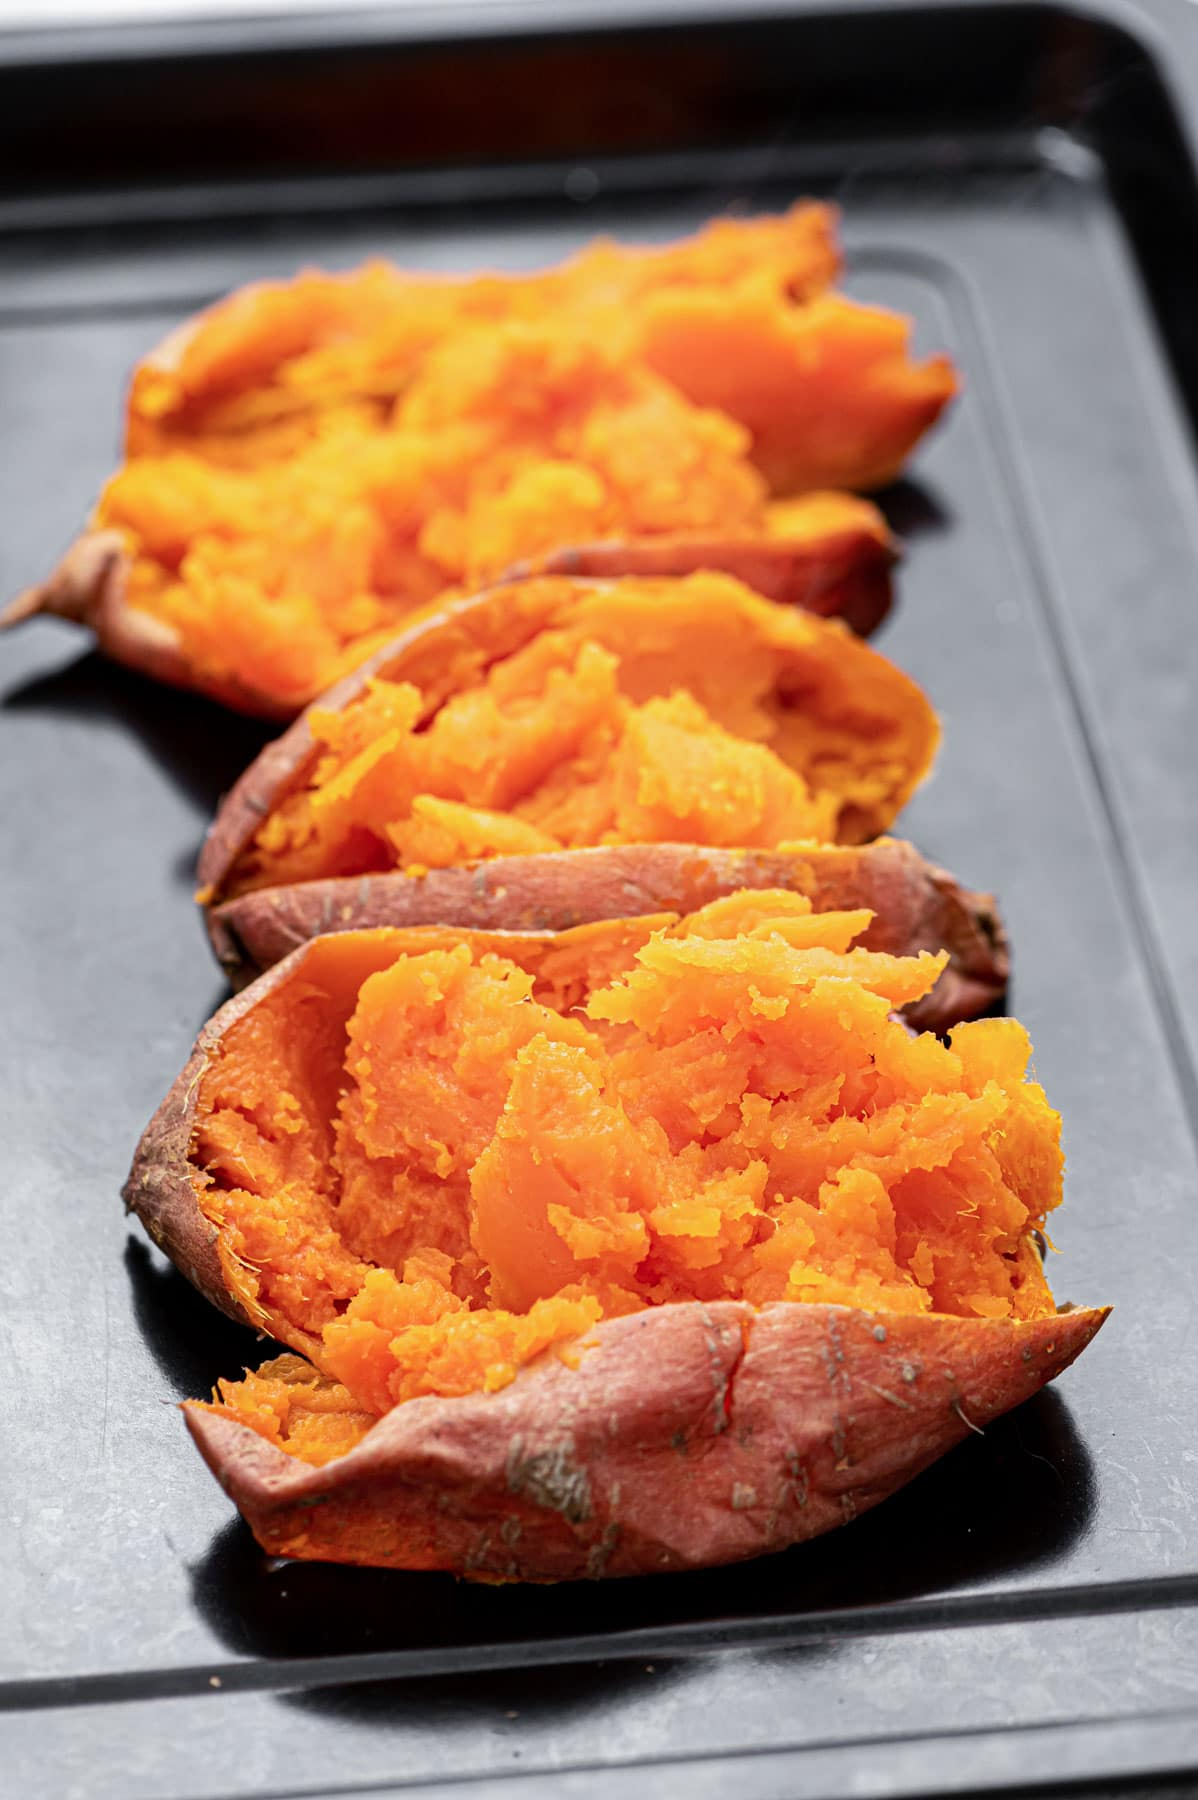 Roasted Sweet Potatoes for gnocchi.